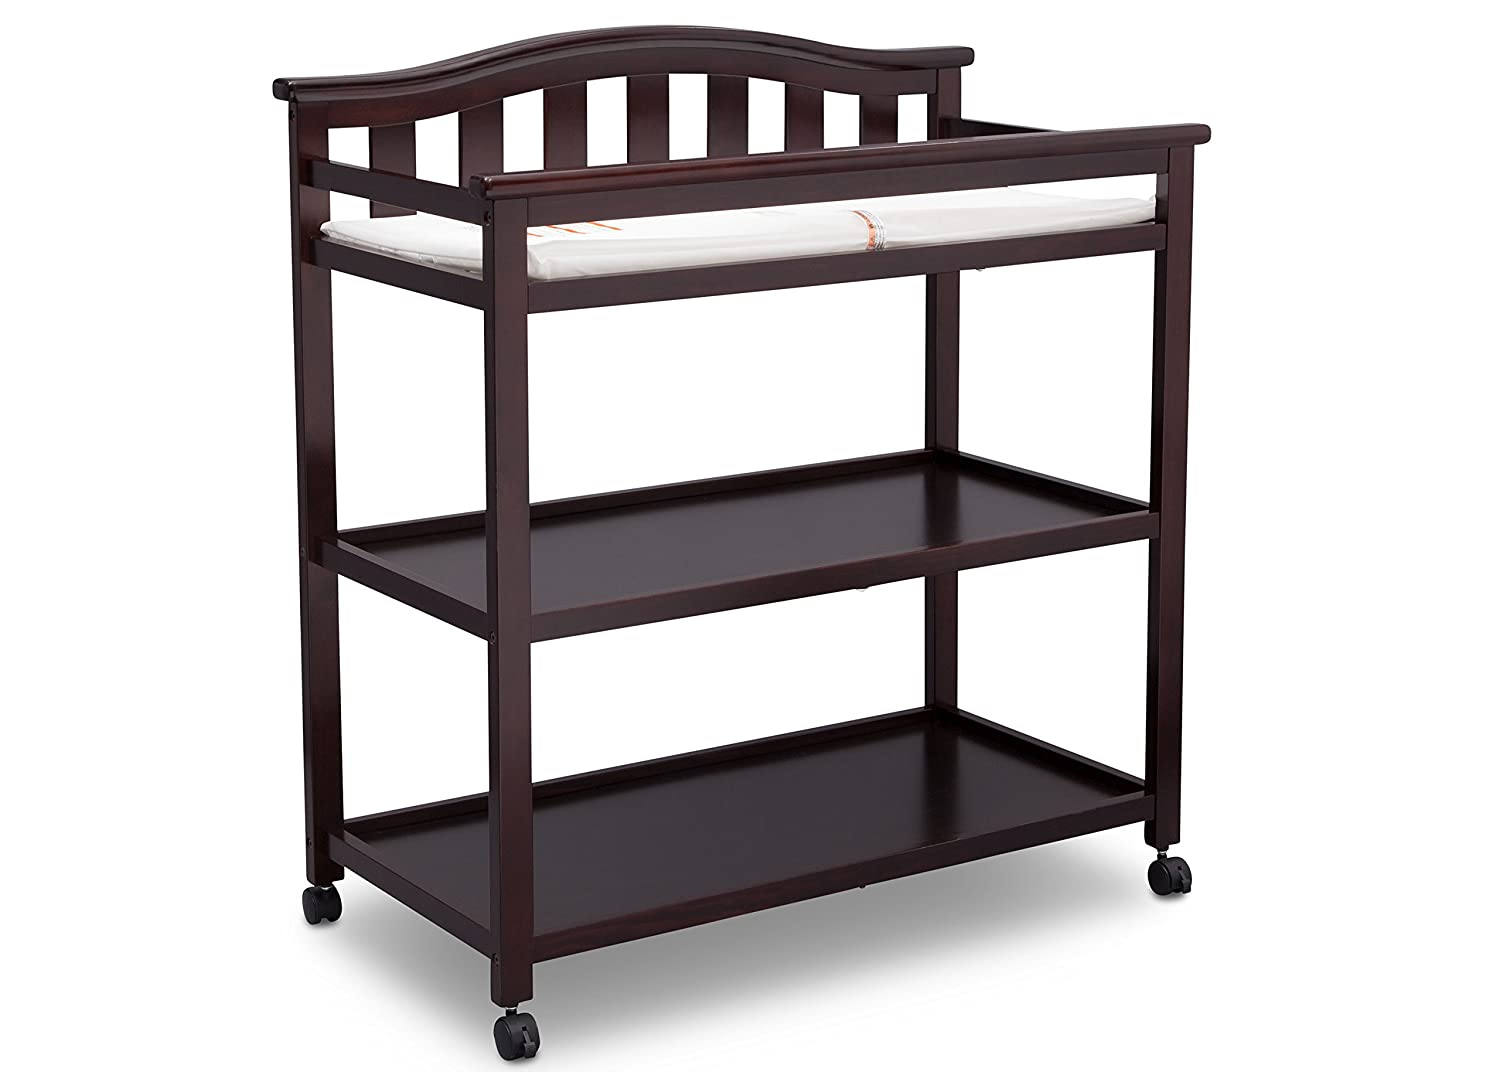 Delta Children Bell Top Changing Table with Casters, Dark Chocolate 540242-207